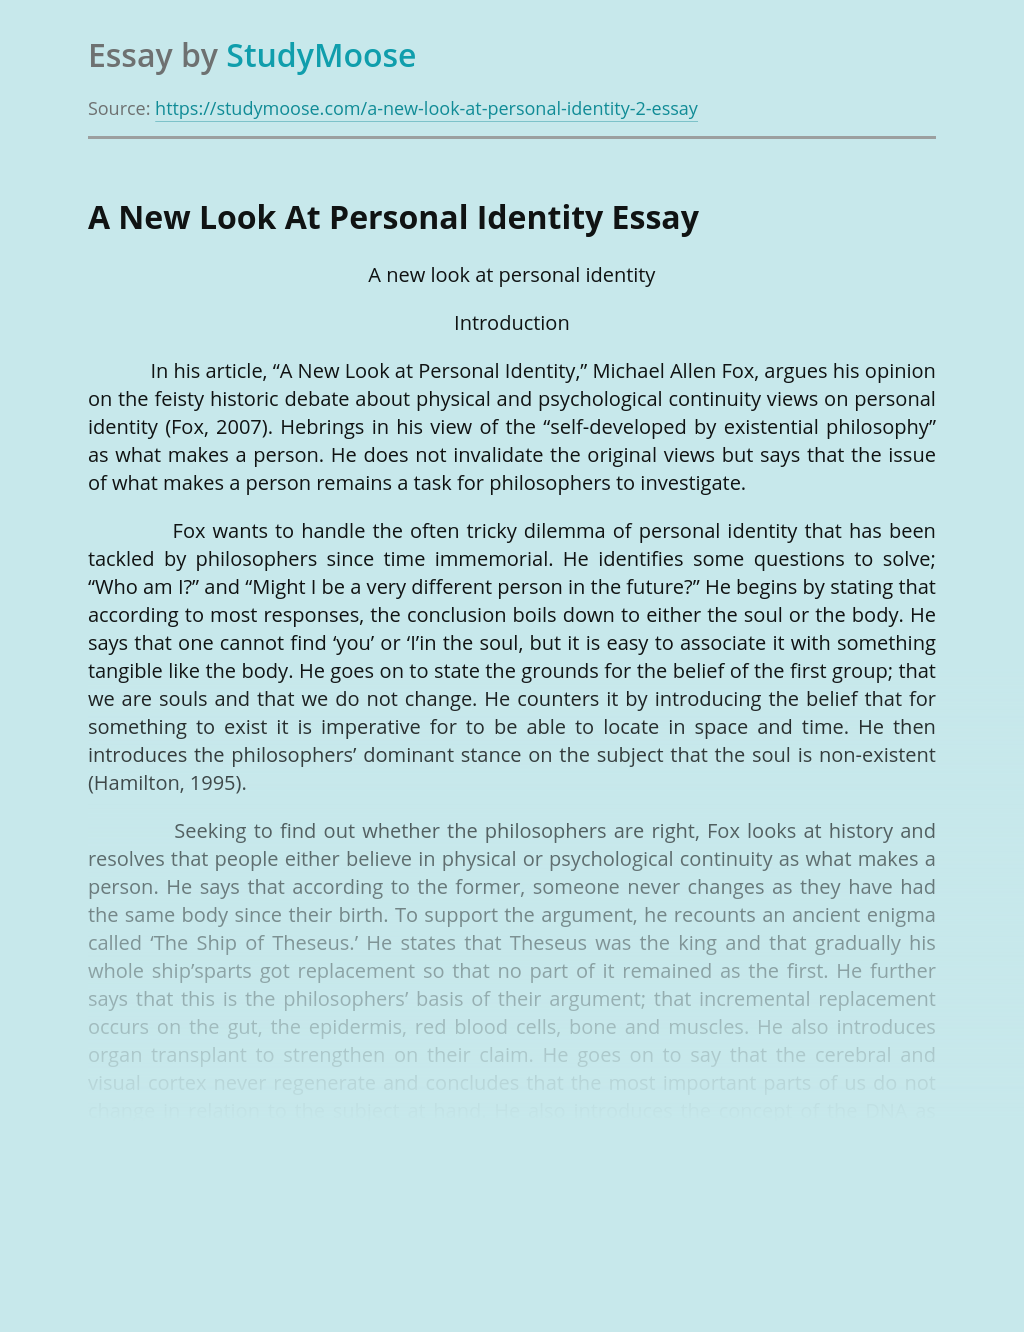 A New Look At Personal Identity